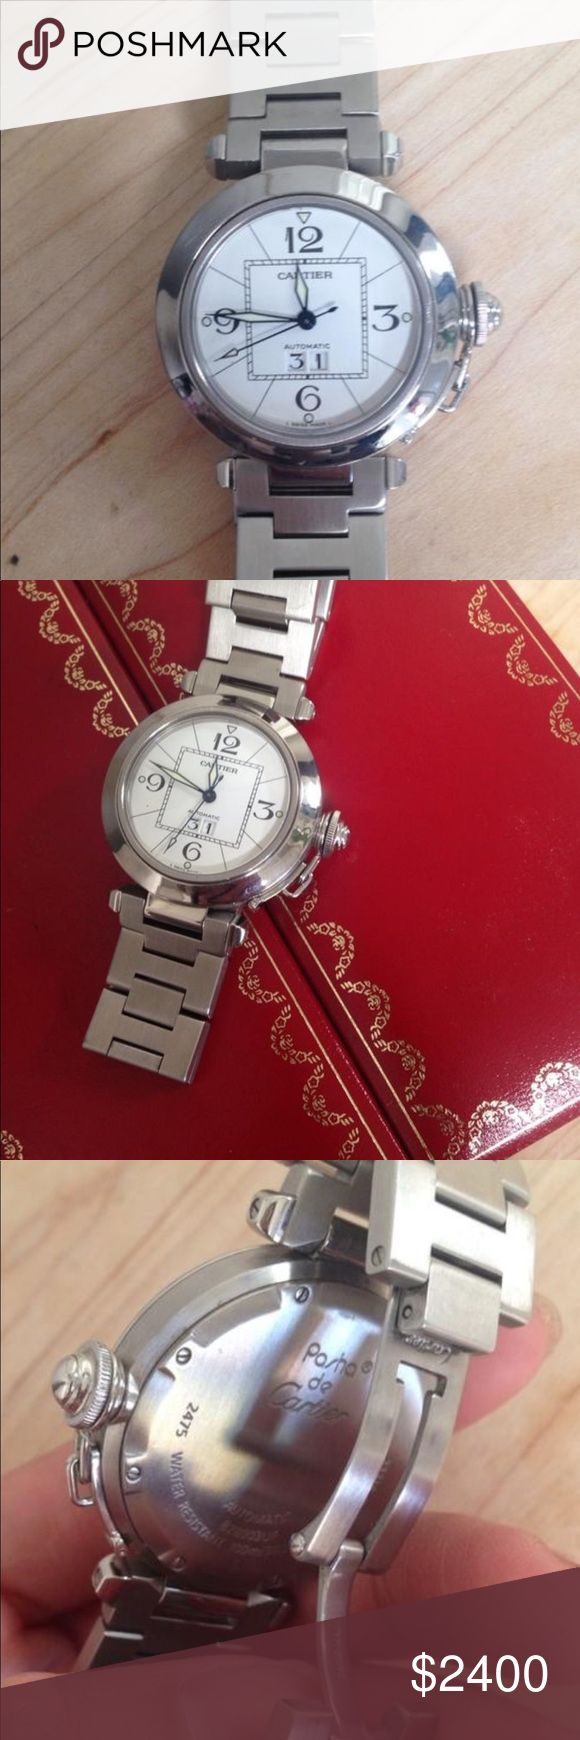 Cartier pasha watch Gorgeous Authentic Cartier pasha watch.  gently used slight scratches but other than that it's in great condition. I don't wear it's been sitting in my drawer for years. It has extra links and the original box no tags or papers. Cartier Accessories Watches